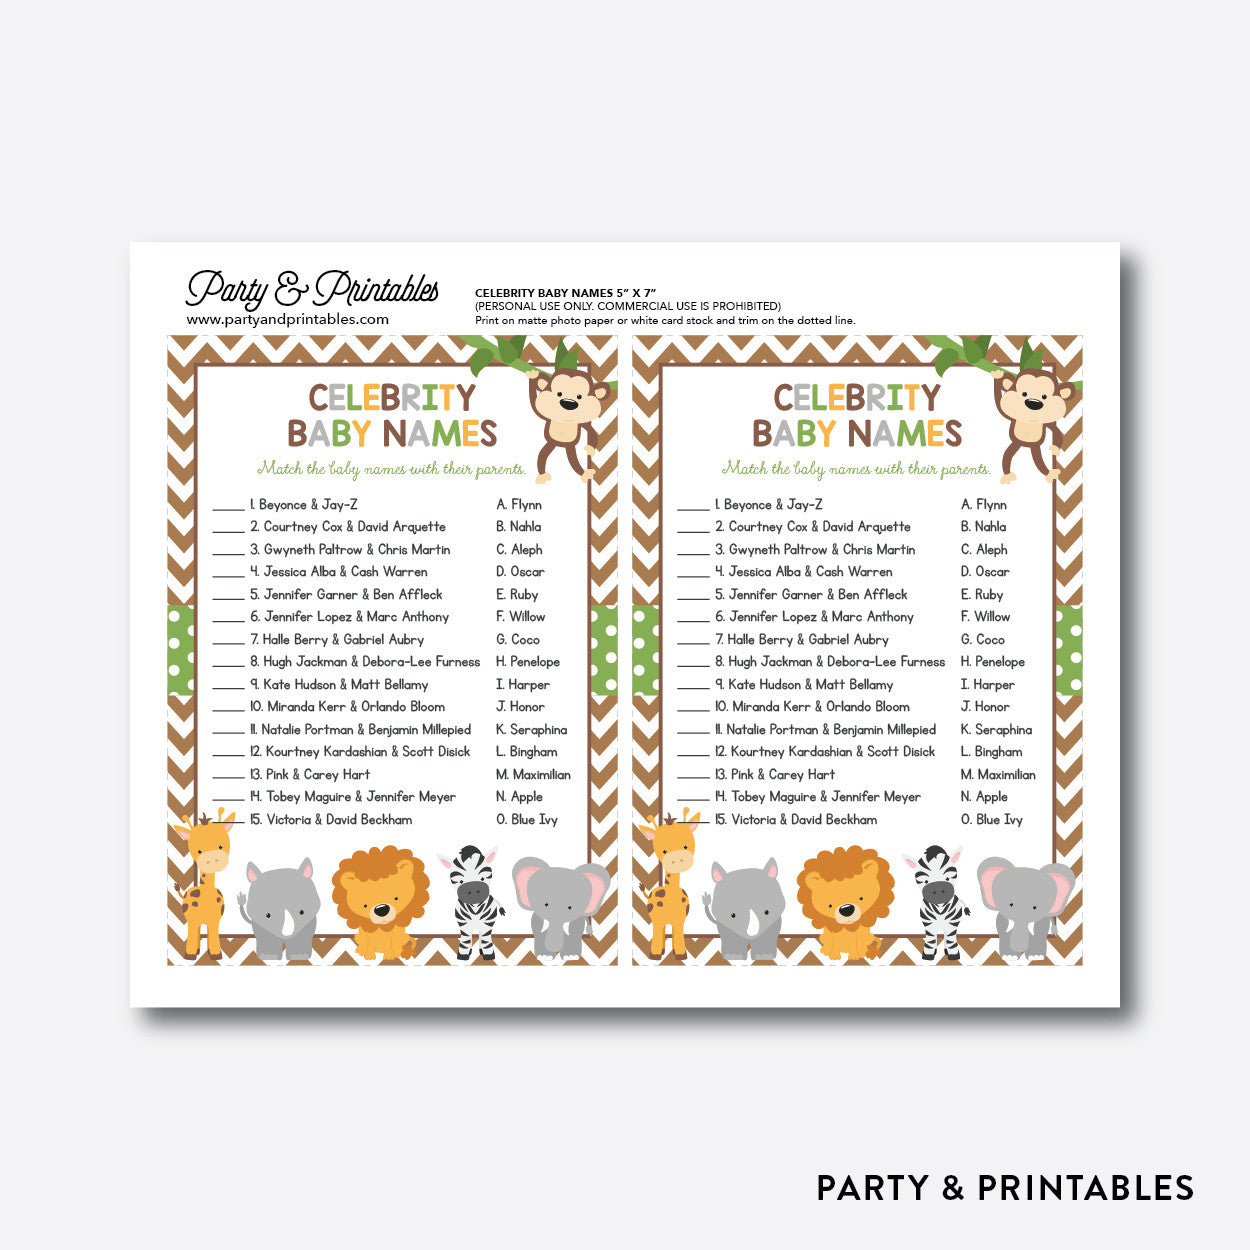 Baby Safari Celebrity Baby Names / Non-Personalized / Instant Download (SBS.31), party printables - Party and Printables